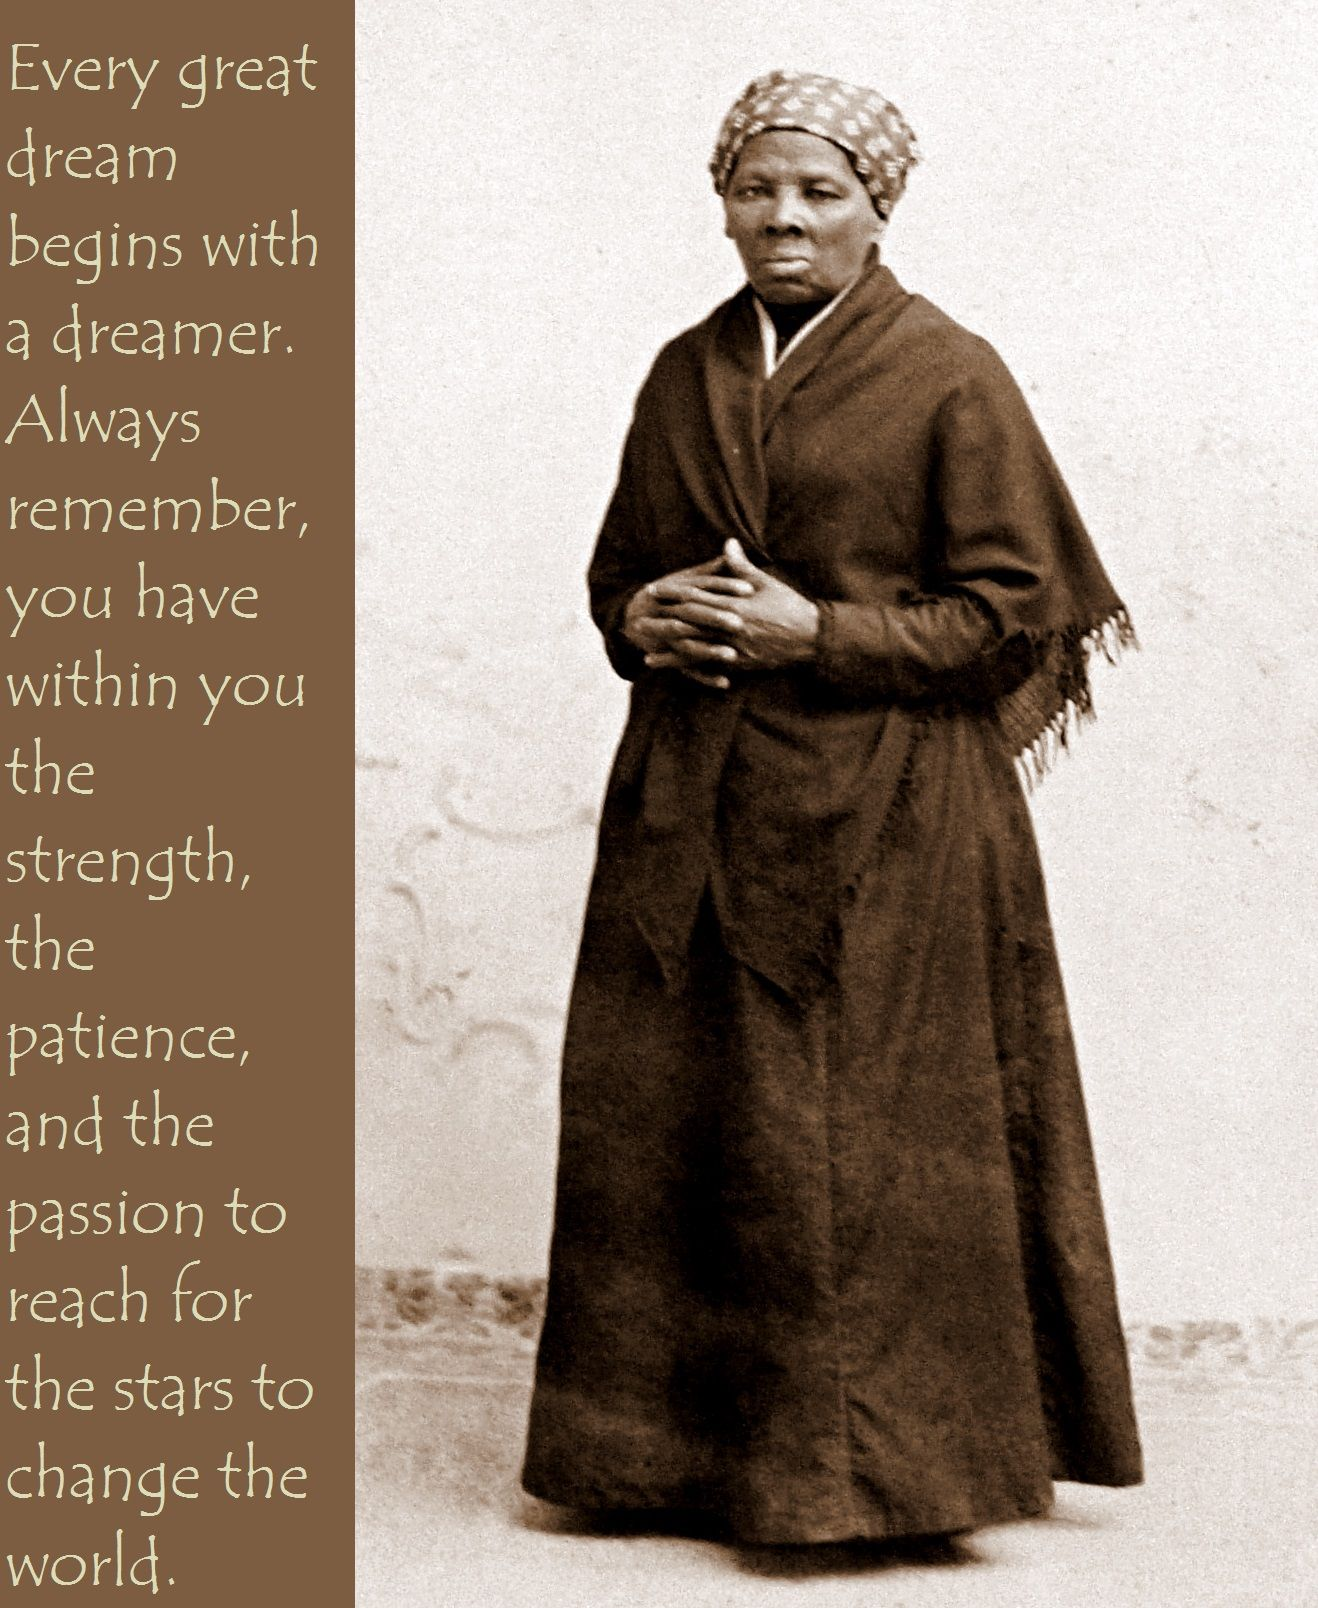 harriet tubman was a former slave who escaped and helped other harriet tubman was a former slave who escaped and helped other slaves achieve dom through the